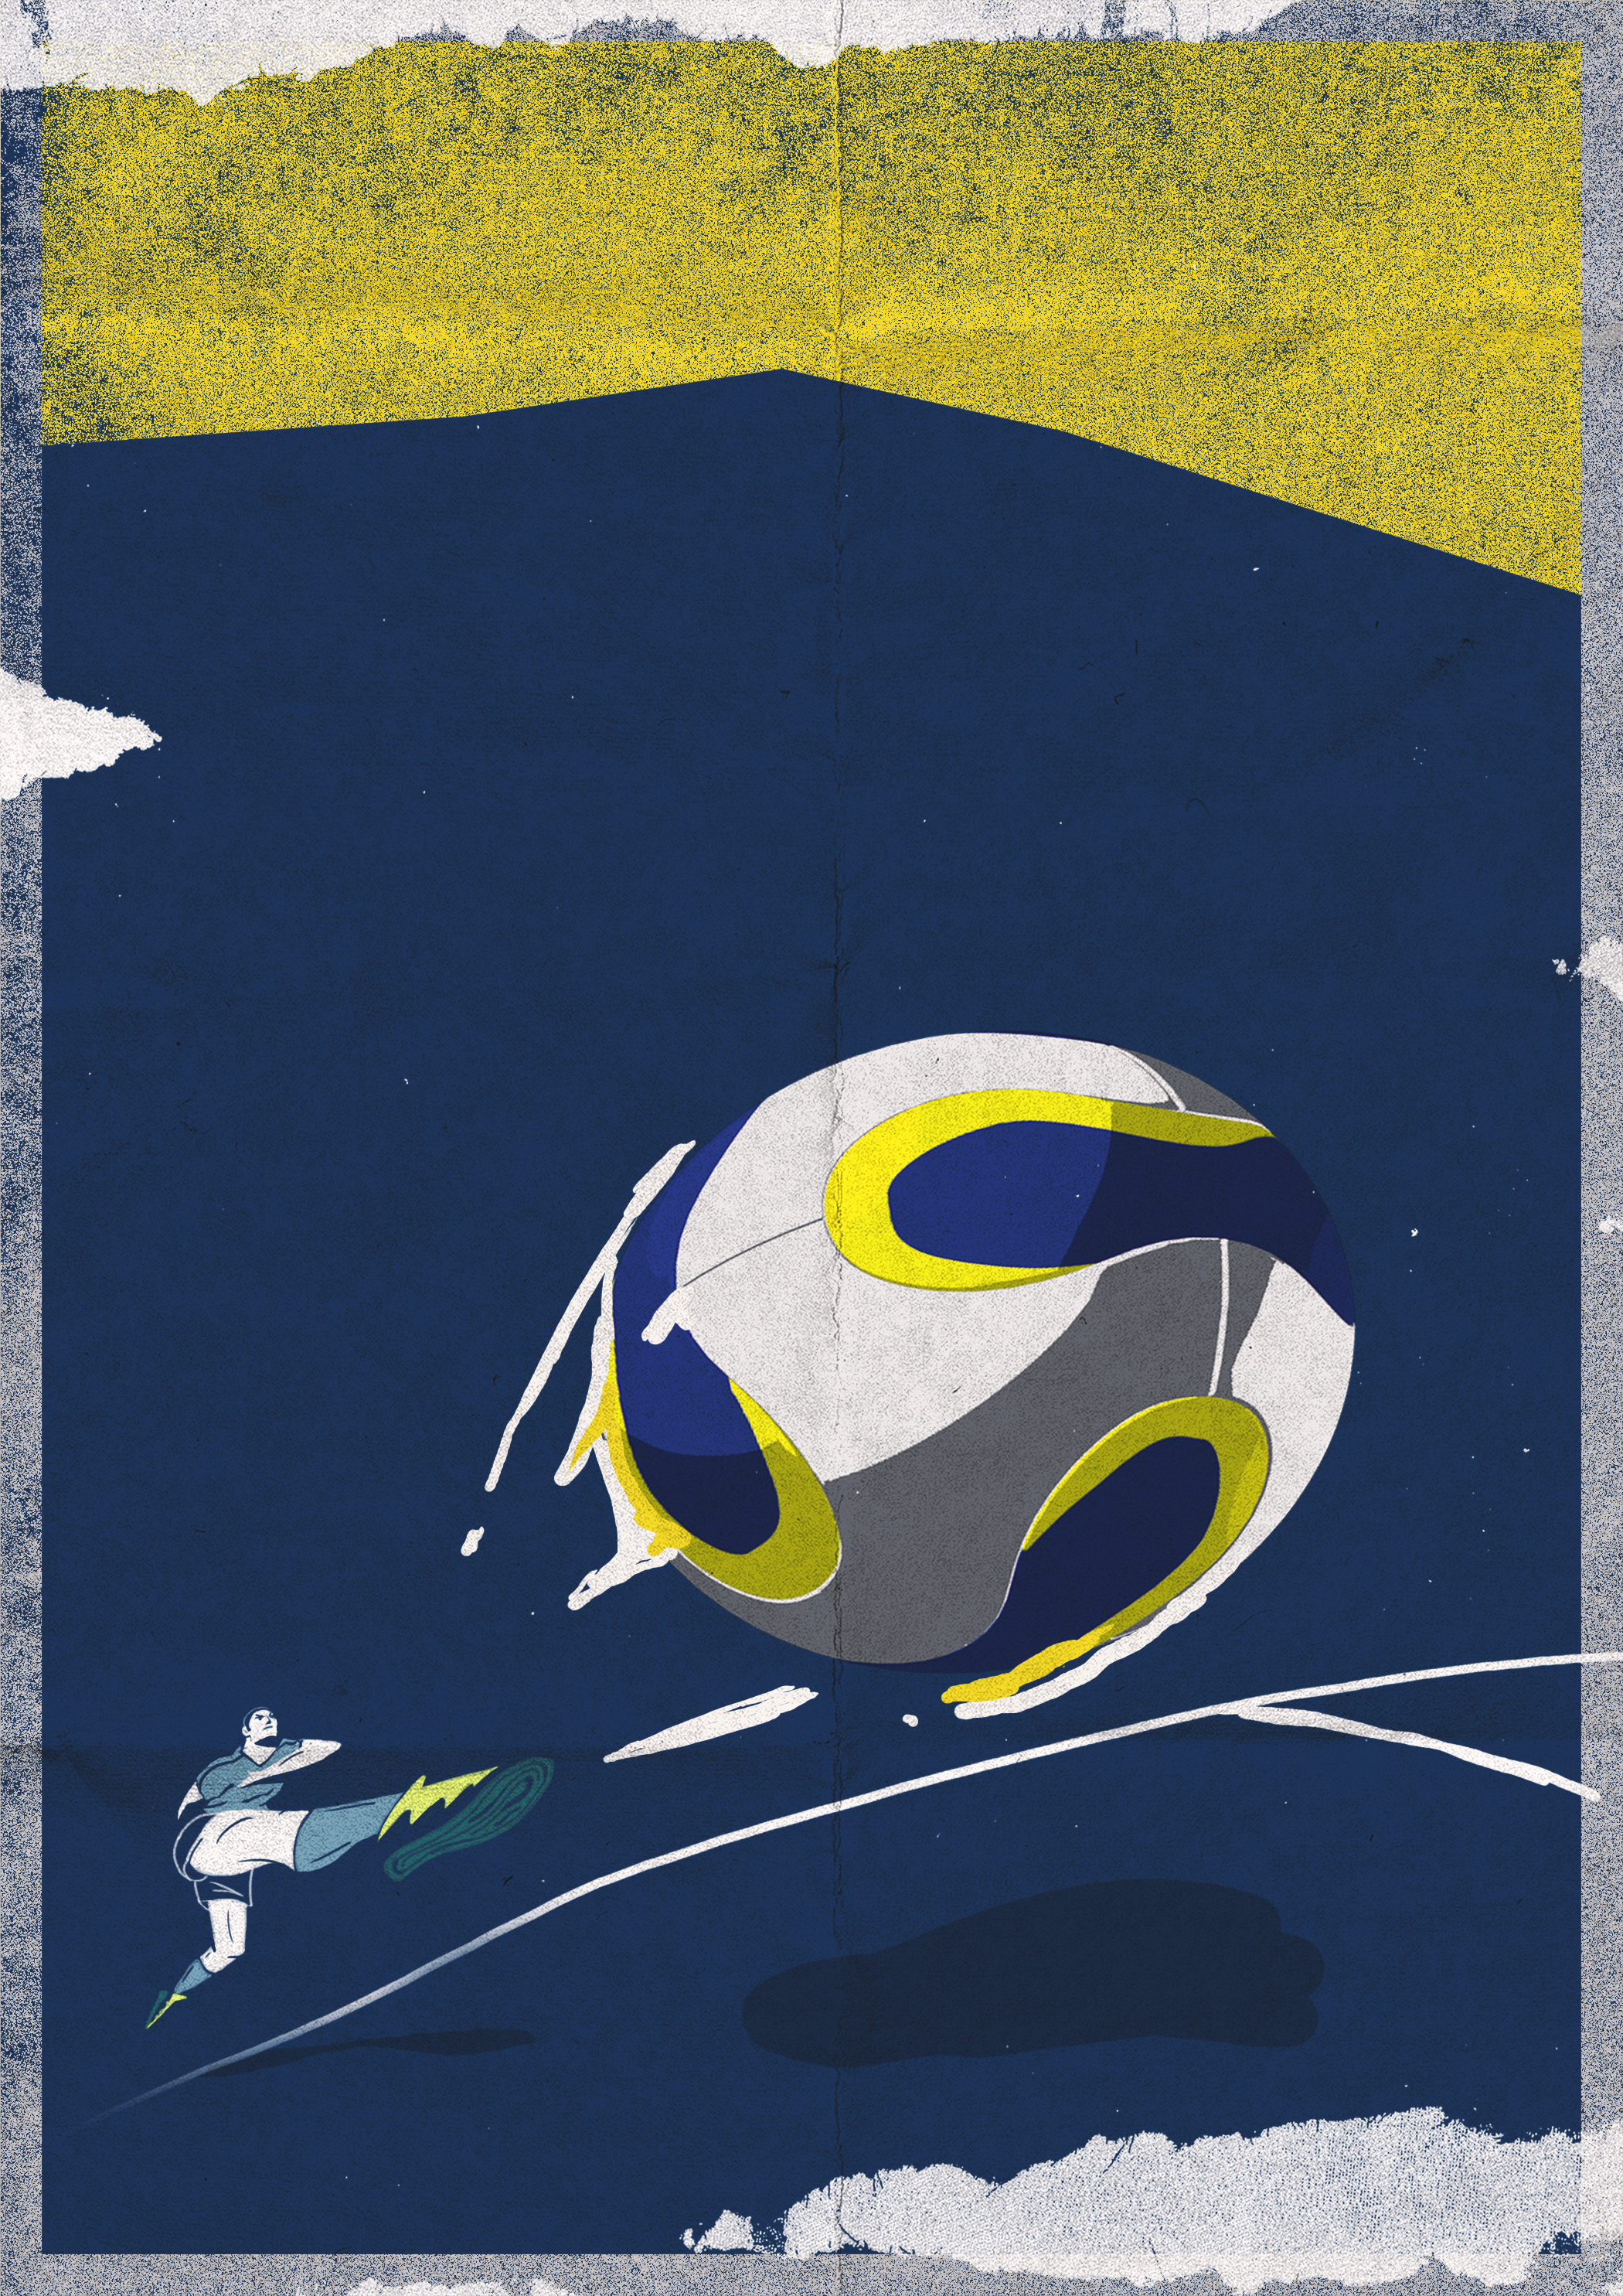 COPA_POSTER_ILLUSTRATION05 copy.jpg